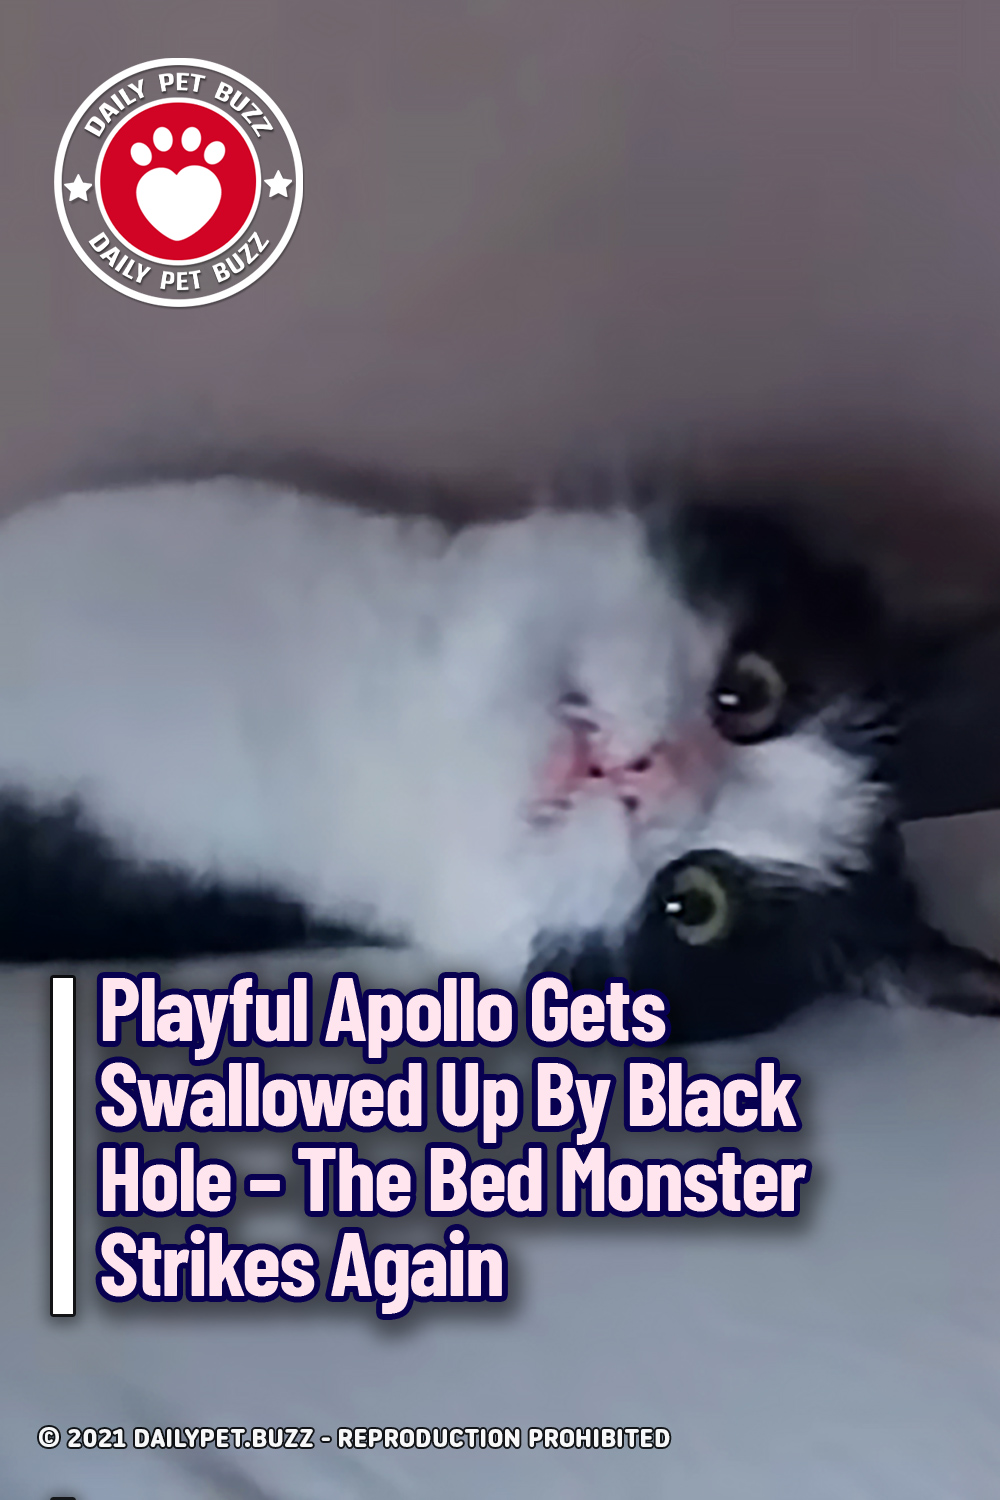 Playful Apollo Gets Swallowed Up By Black Hole – The Bed Monster Strikes Again